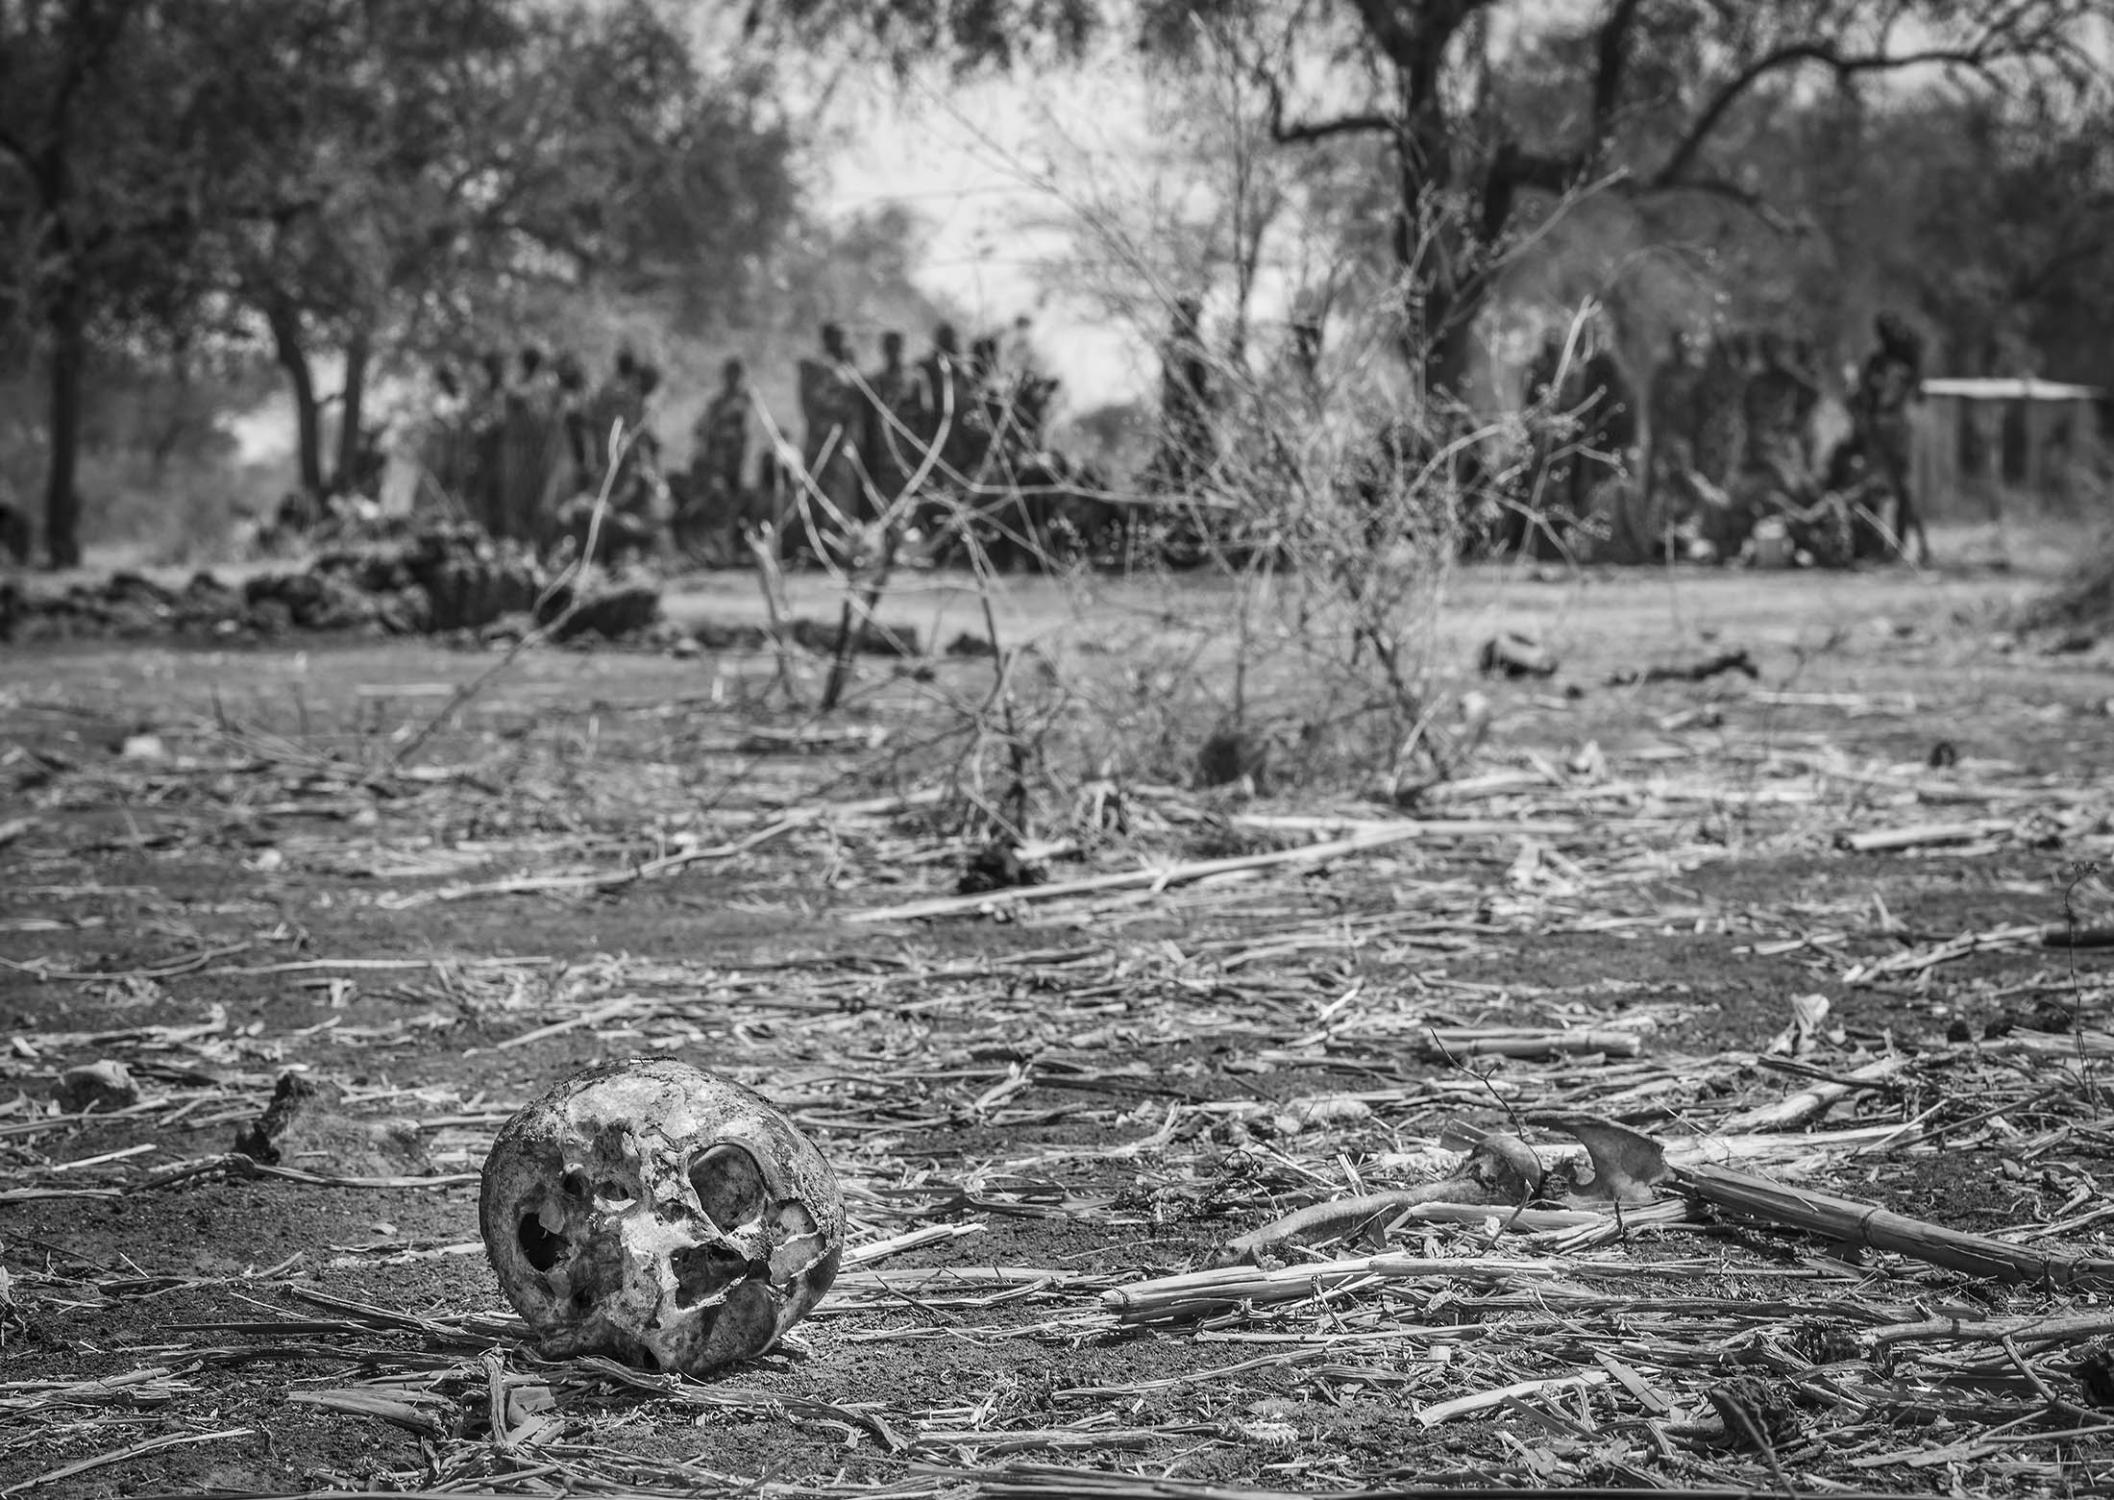 A skull of an elderly man lies 200 meters from a UN Peacekeepers base in a village outside Pibor, South Sudan in January 2012. Only a half year after South Sudan's independence, a group of ethnic Lou Nuer raided the village of ethnic Murle, the man's hut was set alight with him in it.